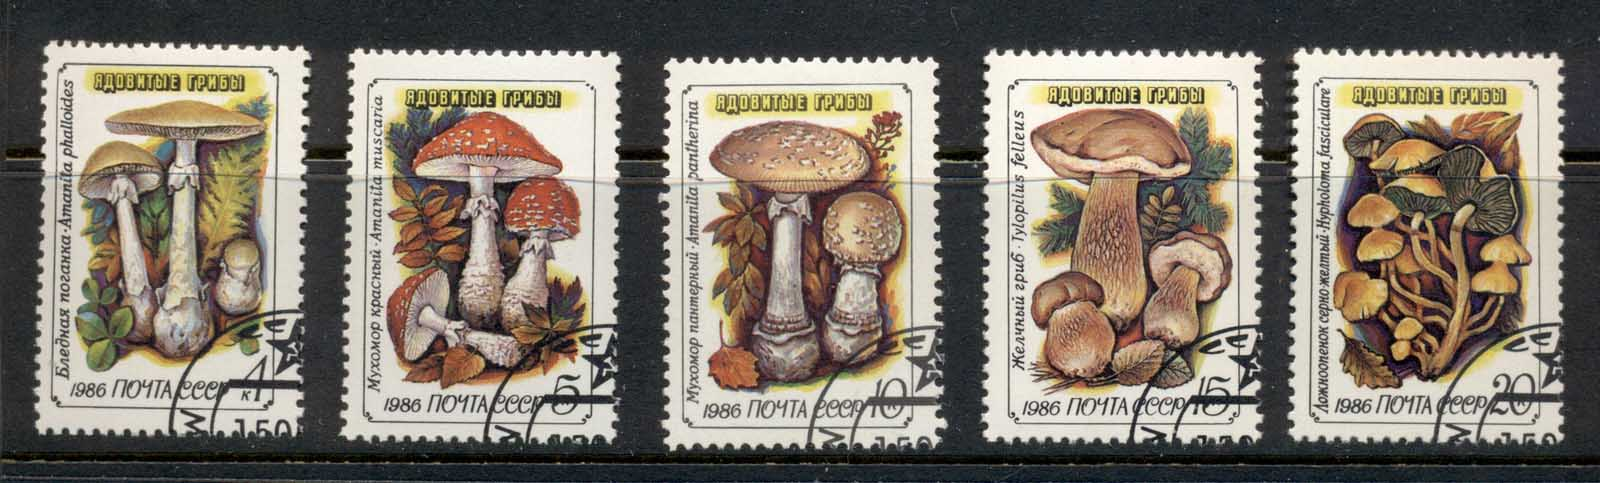 Russia 1986 Funghi, Mushrooms, Toadstools CTO